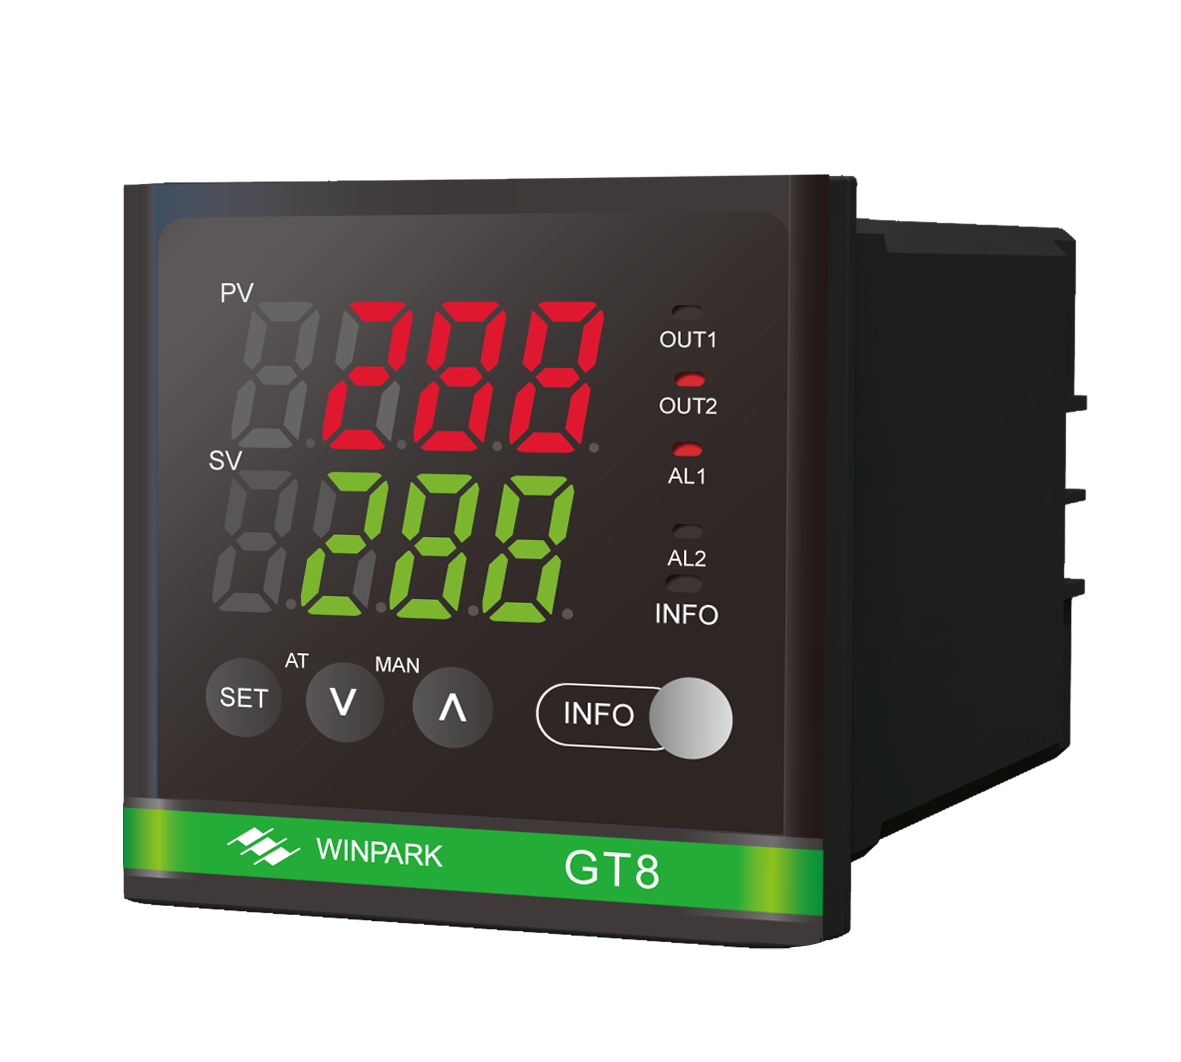 digital mould digital temperature controller Winpark GT8-ATL110 touch screen for zte n790 (sincerely looking for cooperation)